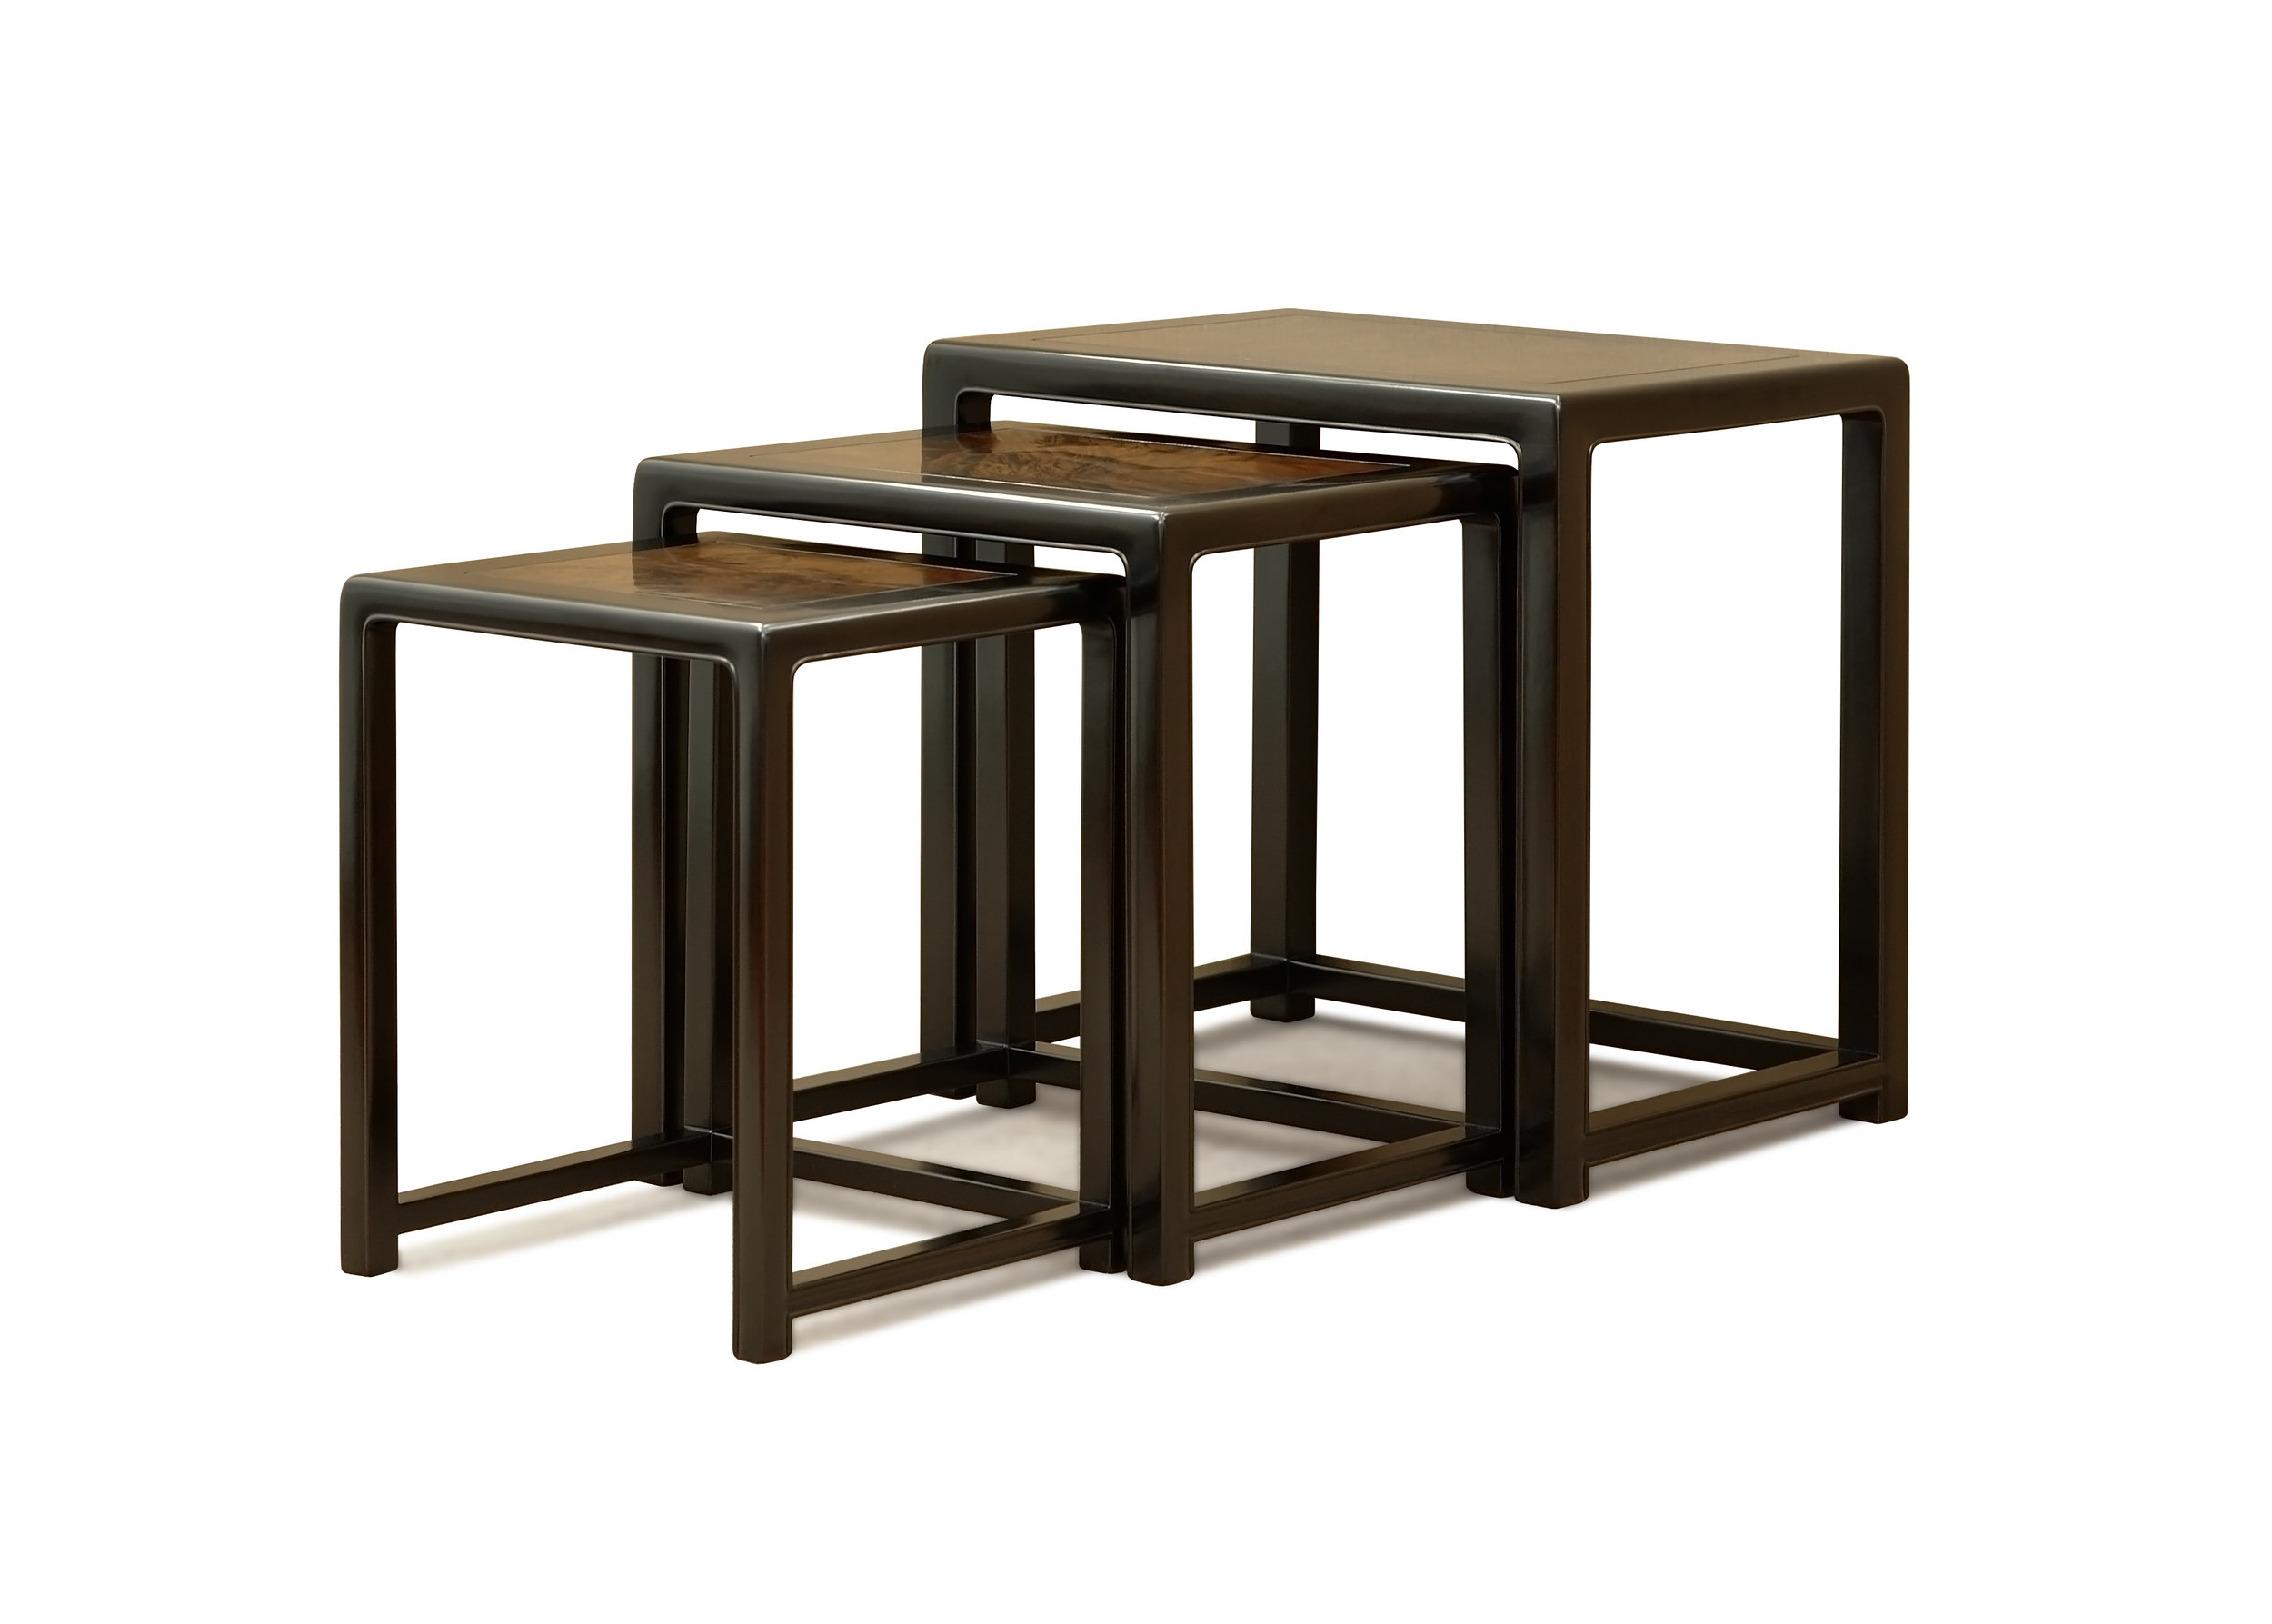 ....Ming Style Chinese furniture : Nested Tables..明式中式家具: 层叠台....